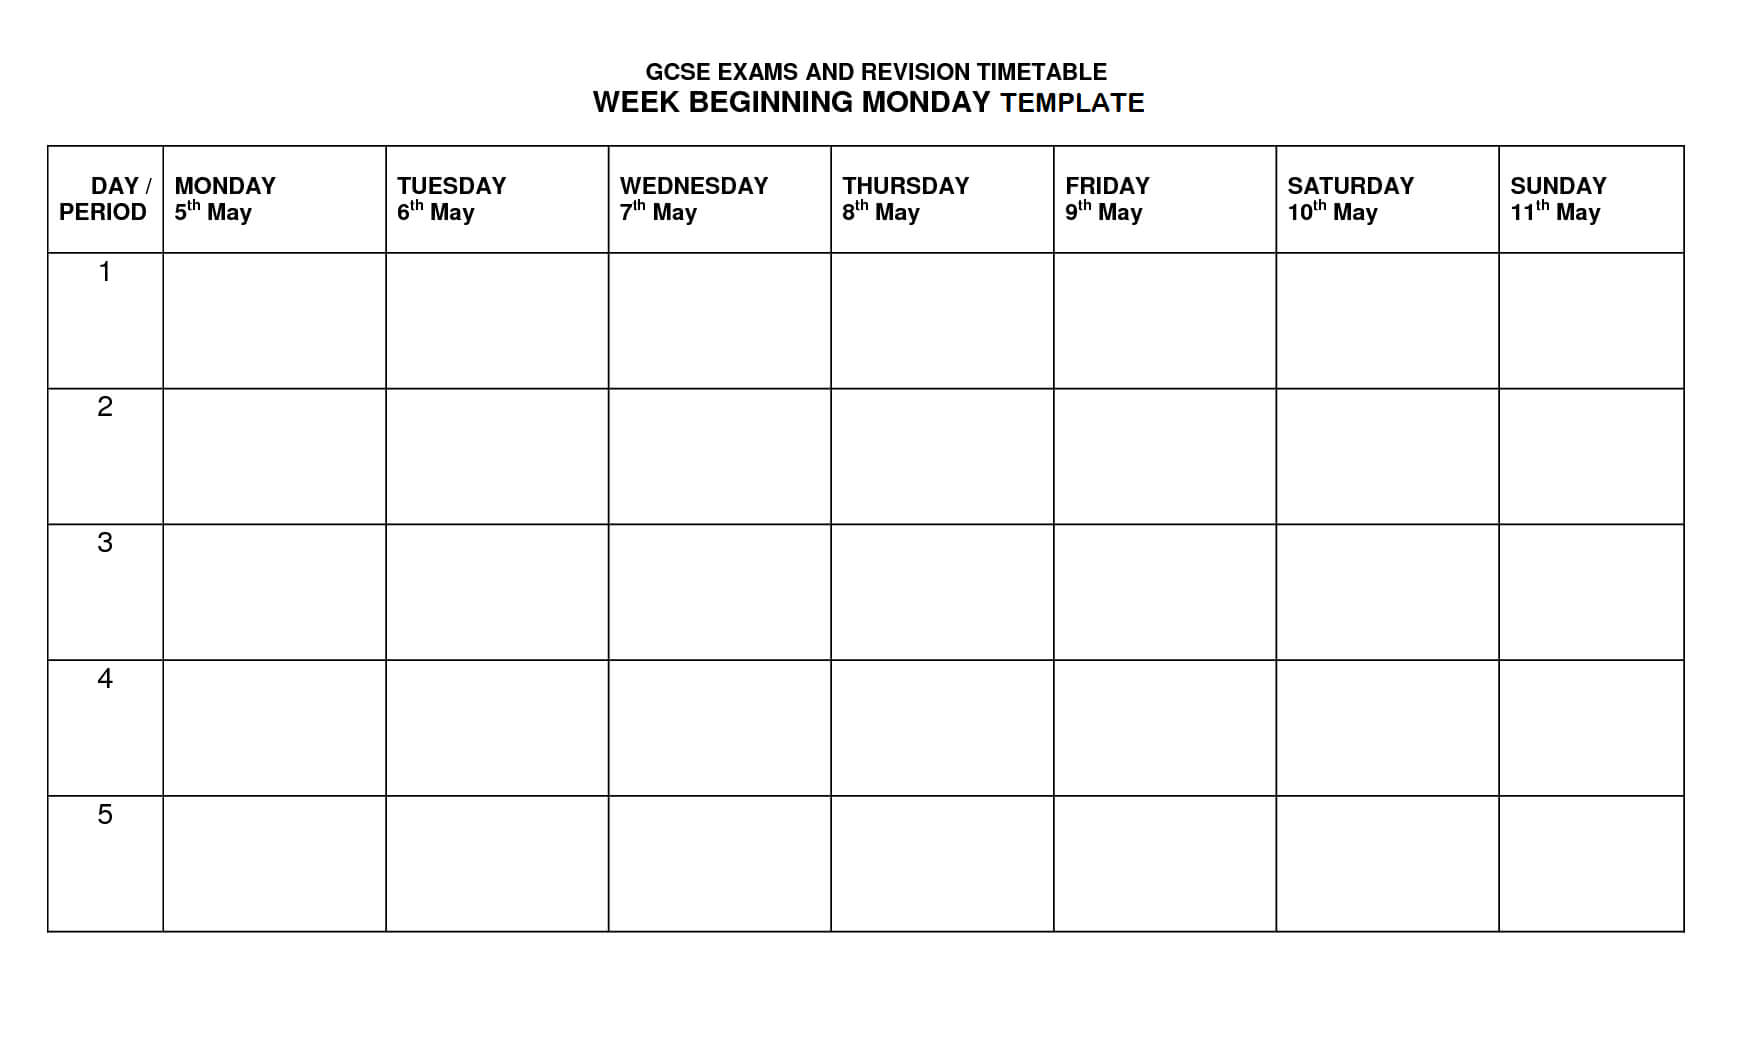 Timetable Template | Timetable Template, Class Schedule Pertaining To Blank Revision Timetable Template